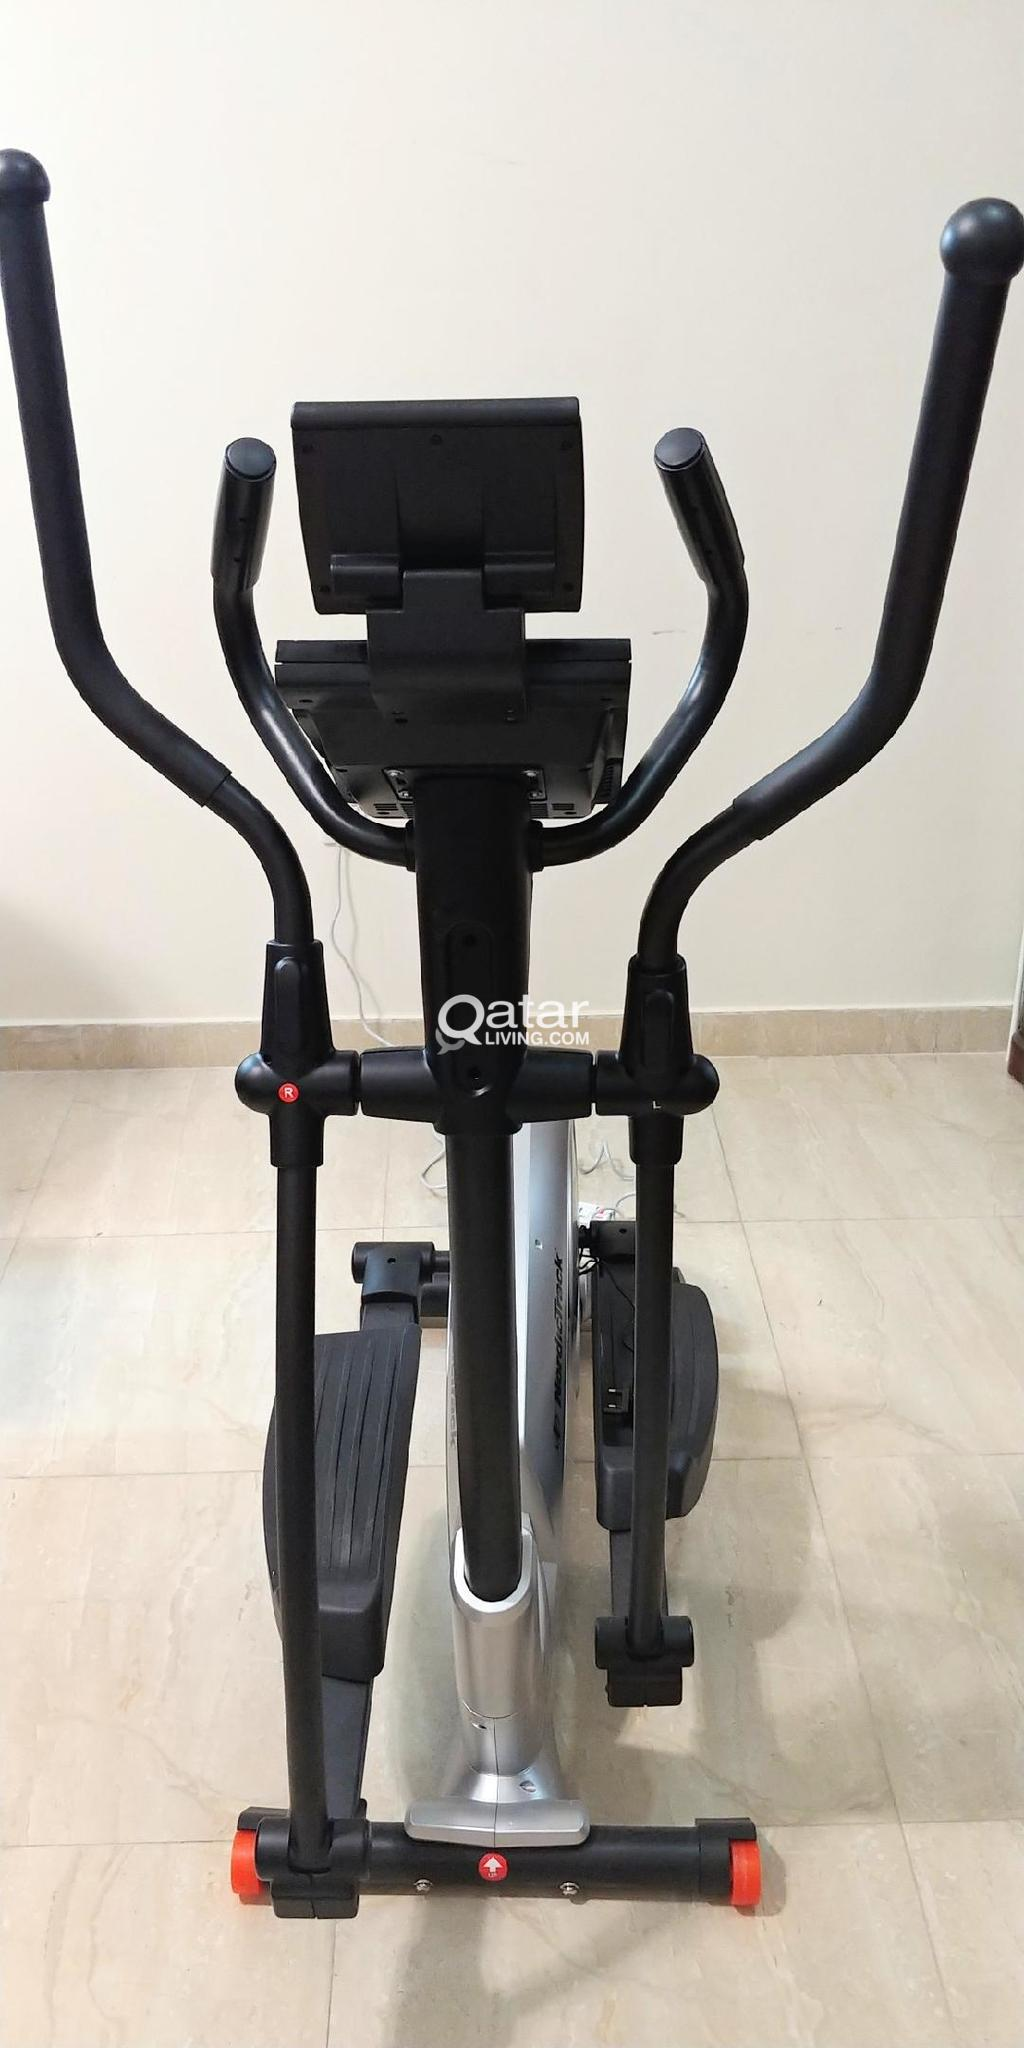 Used Elliptical For Sale >> Nordictrack Usa Elliptical For Sale Used For 2 Mths Only